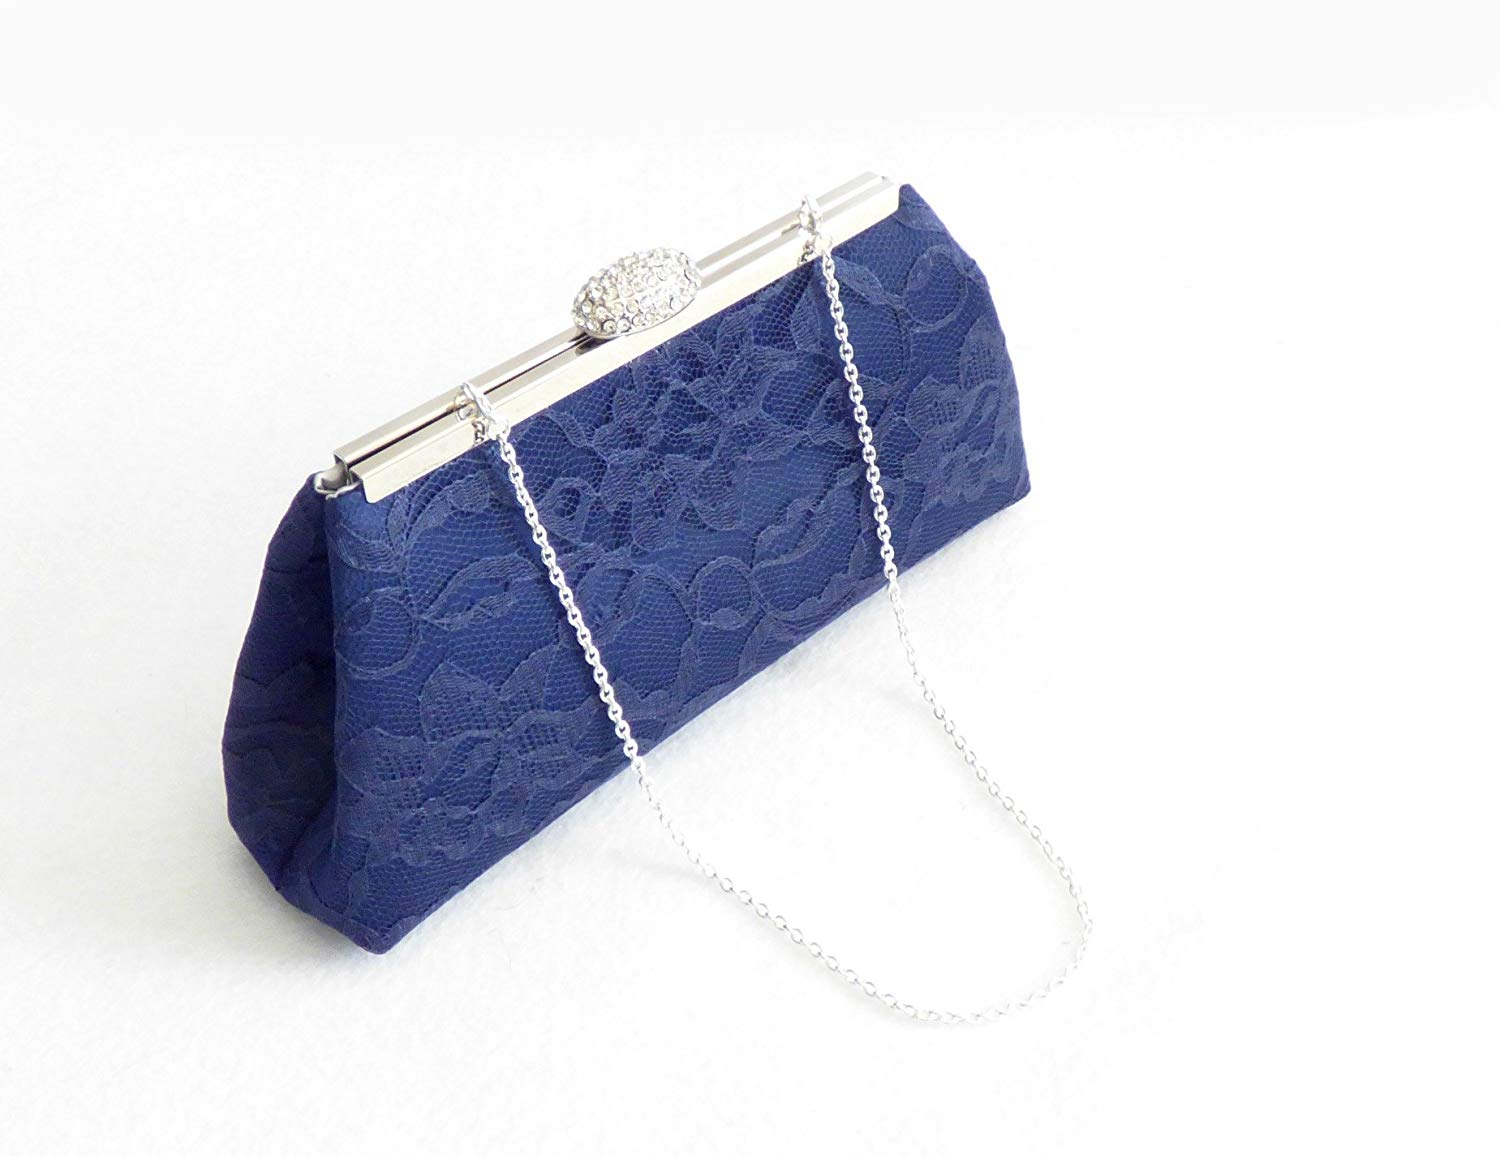 Navy Blue and Silver Bridal Clutch, Something Blue, Bridesmaid Gift, Mother of the Bride Clutch, Bridesmaid Clutch